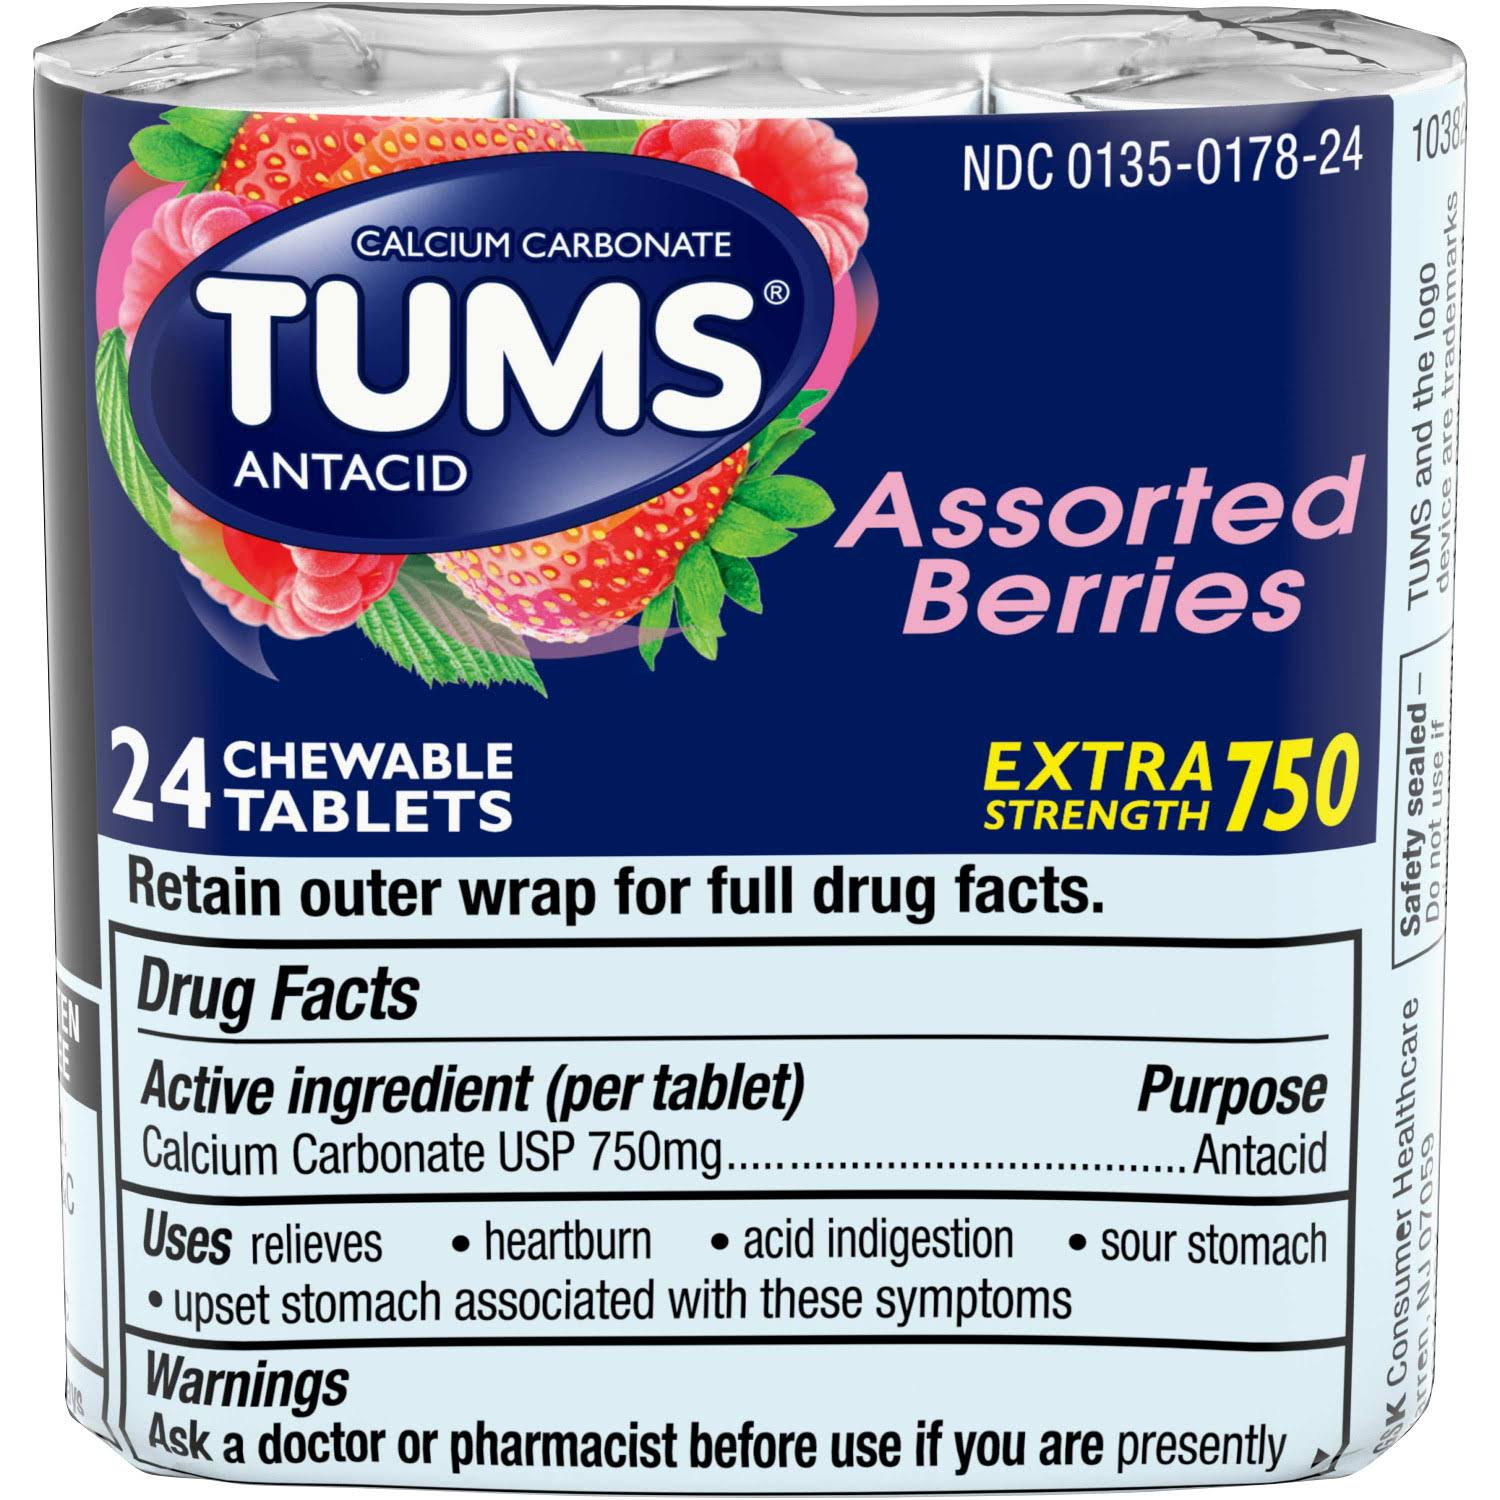 TUMS Extra Strength Antacid Chewable Tablets - Assorted Berries, 24 Count